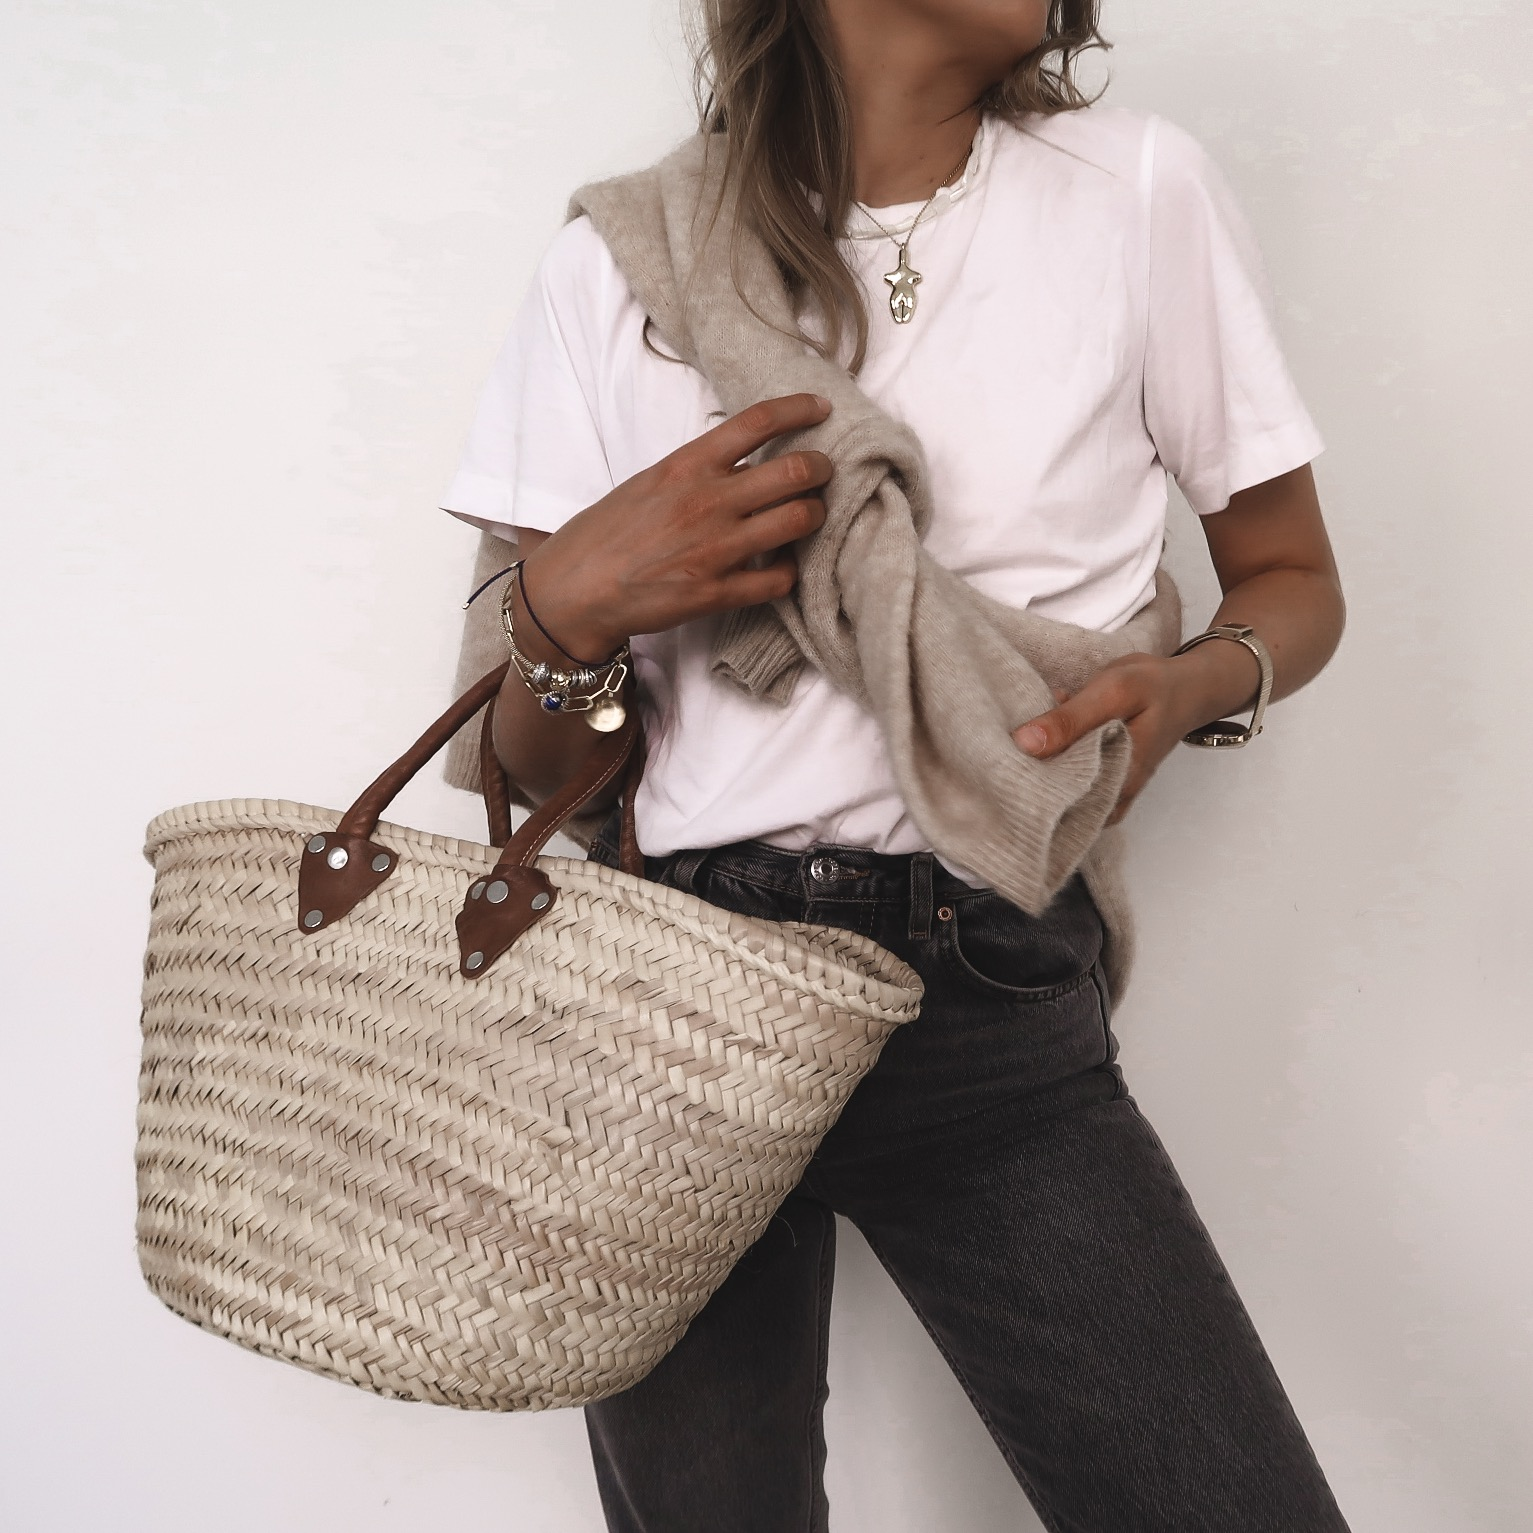 Summer Clothes For Autumn - Autumn Outfit ideas - Large Basket Bag